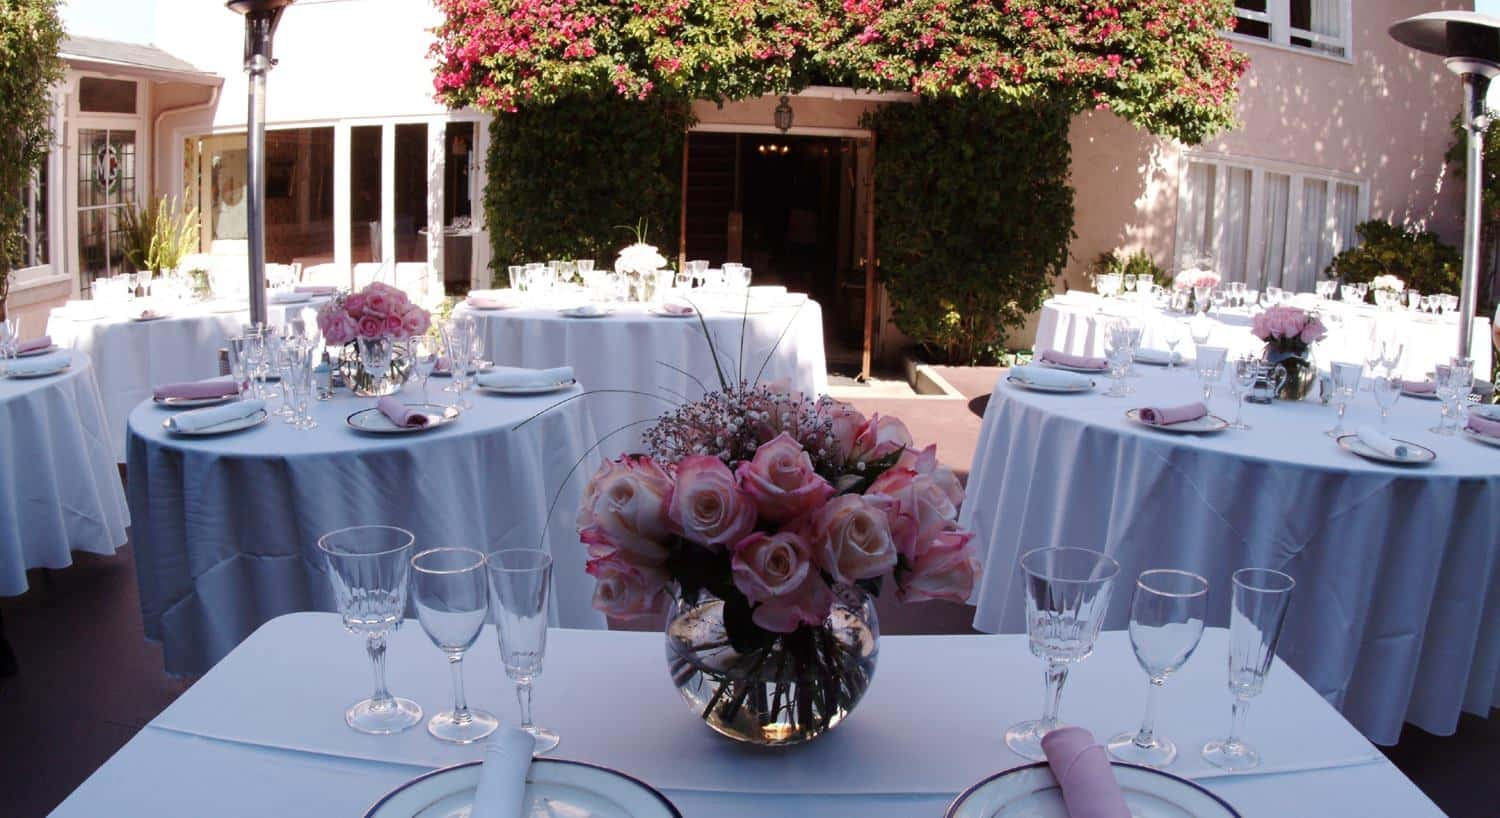 Wedding tables dressed in white with pink napkins and pink roses